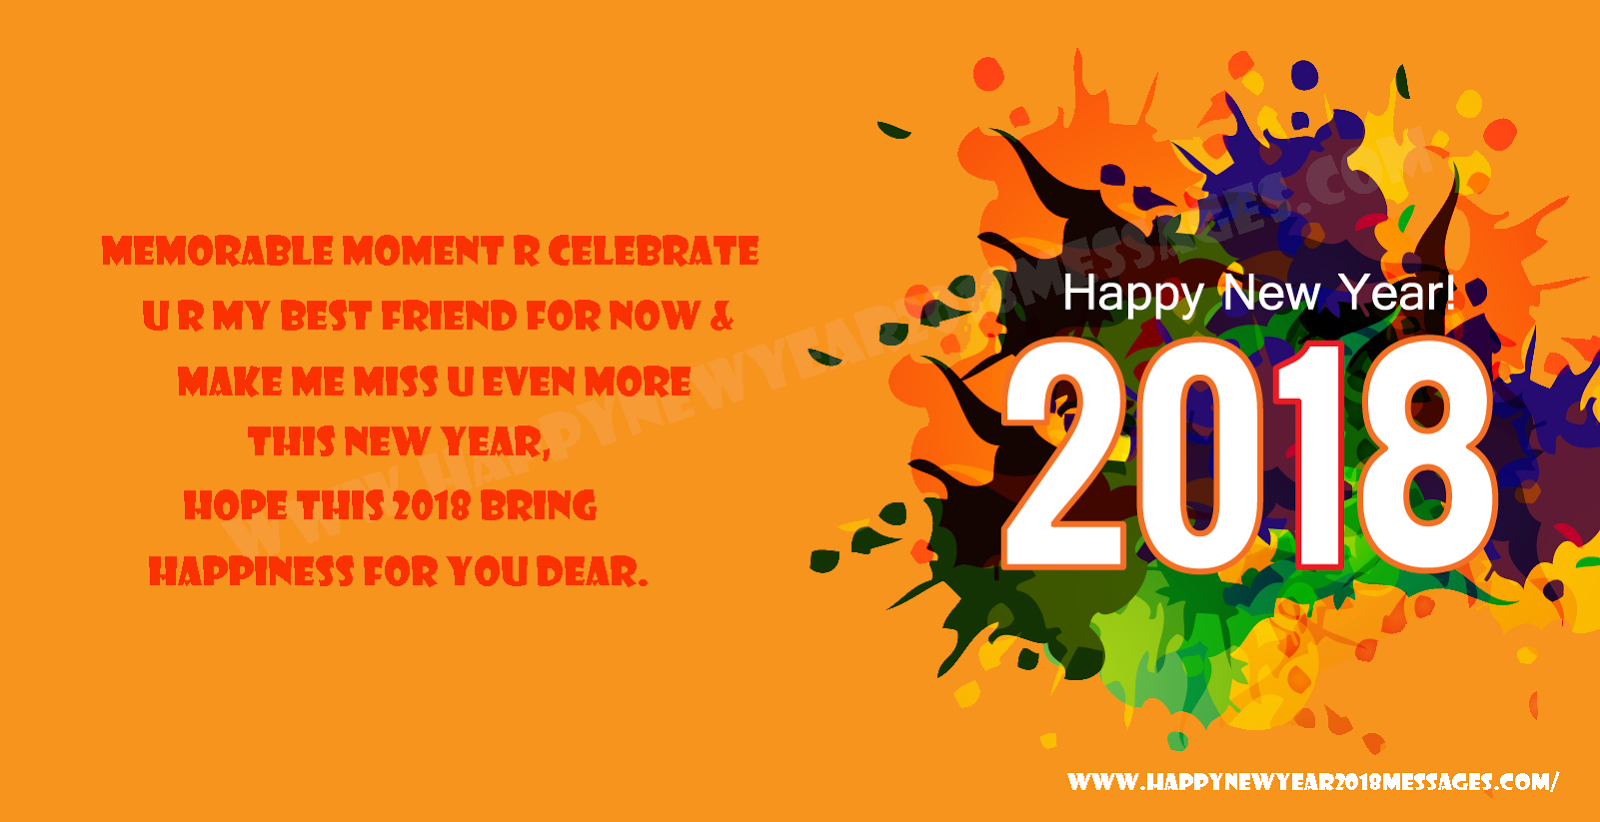 In This Article, We Are Going To Discuss Happy New Year 2018 SMS, New Year  2018 SMS, New Year Messages 2018, Happy New Year 2018 Messages.